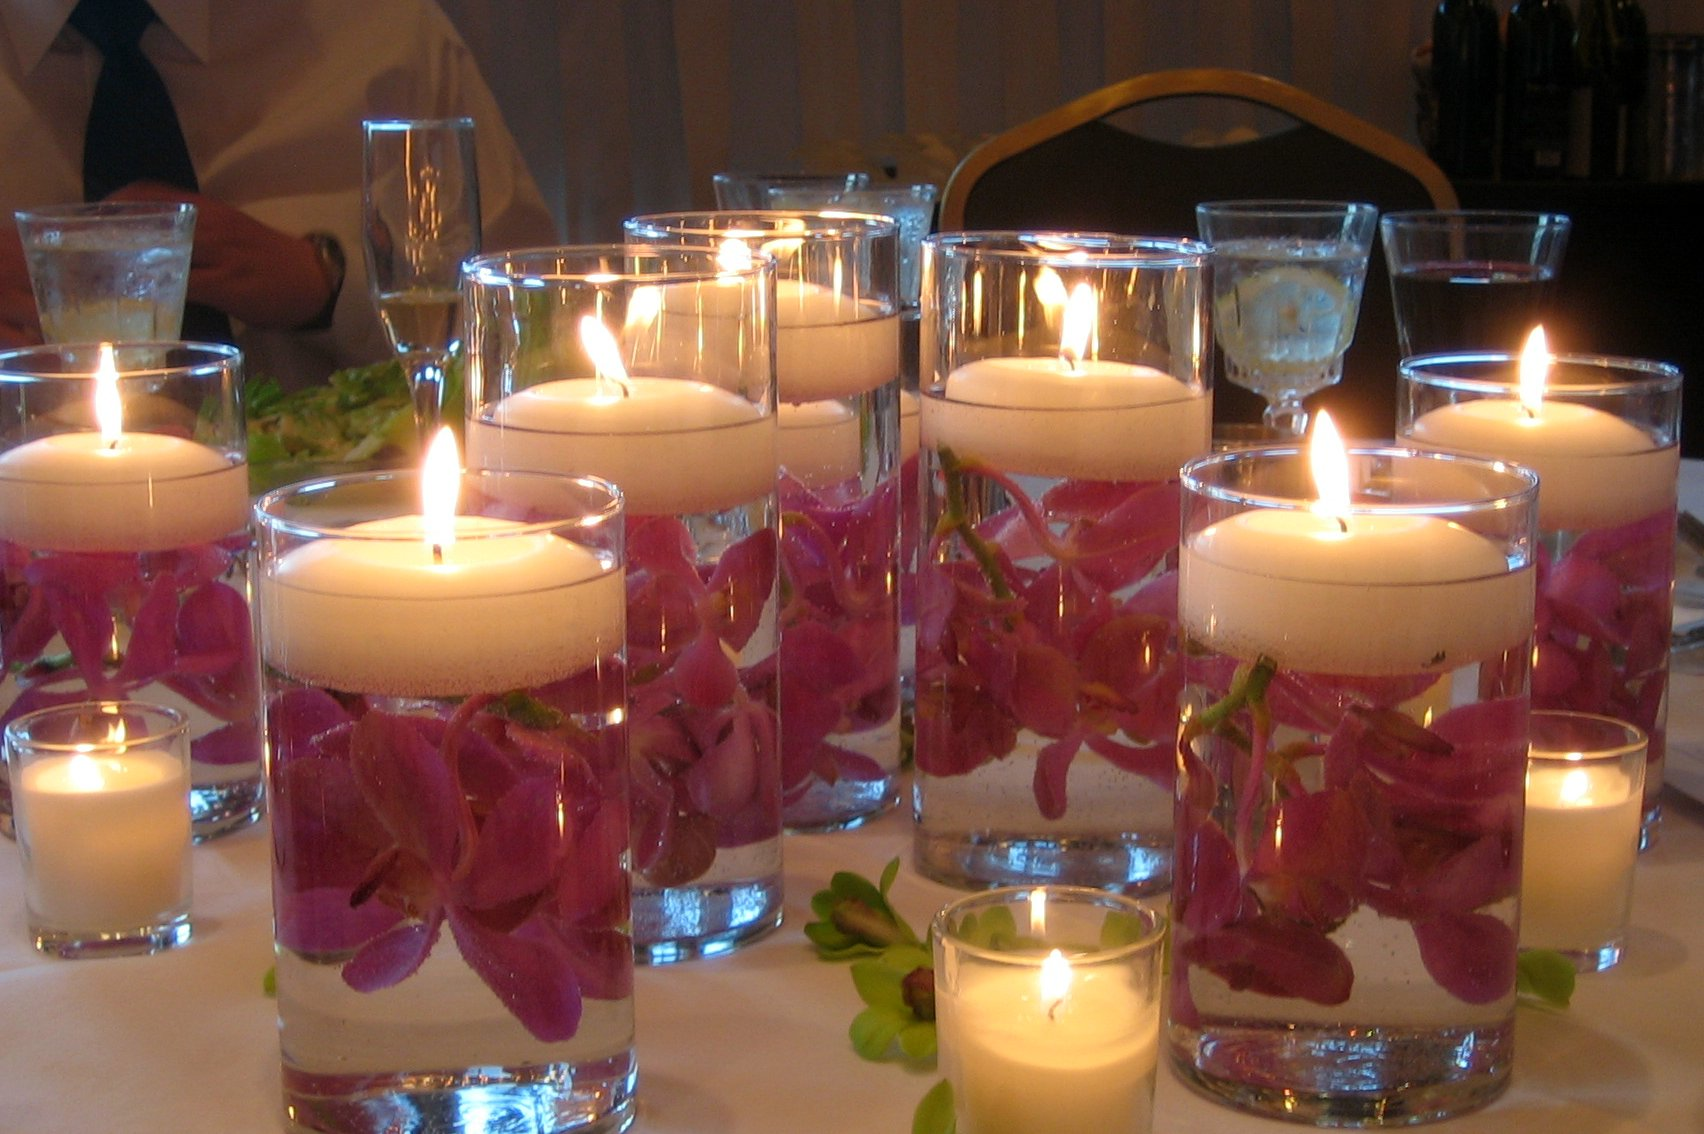 Gallery: Ideas for Decorating your Table with Floating Candles